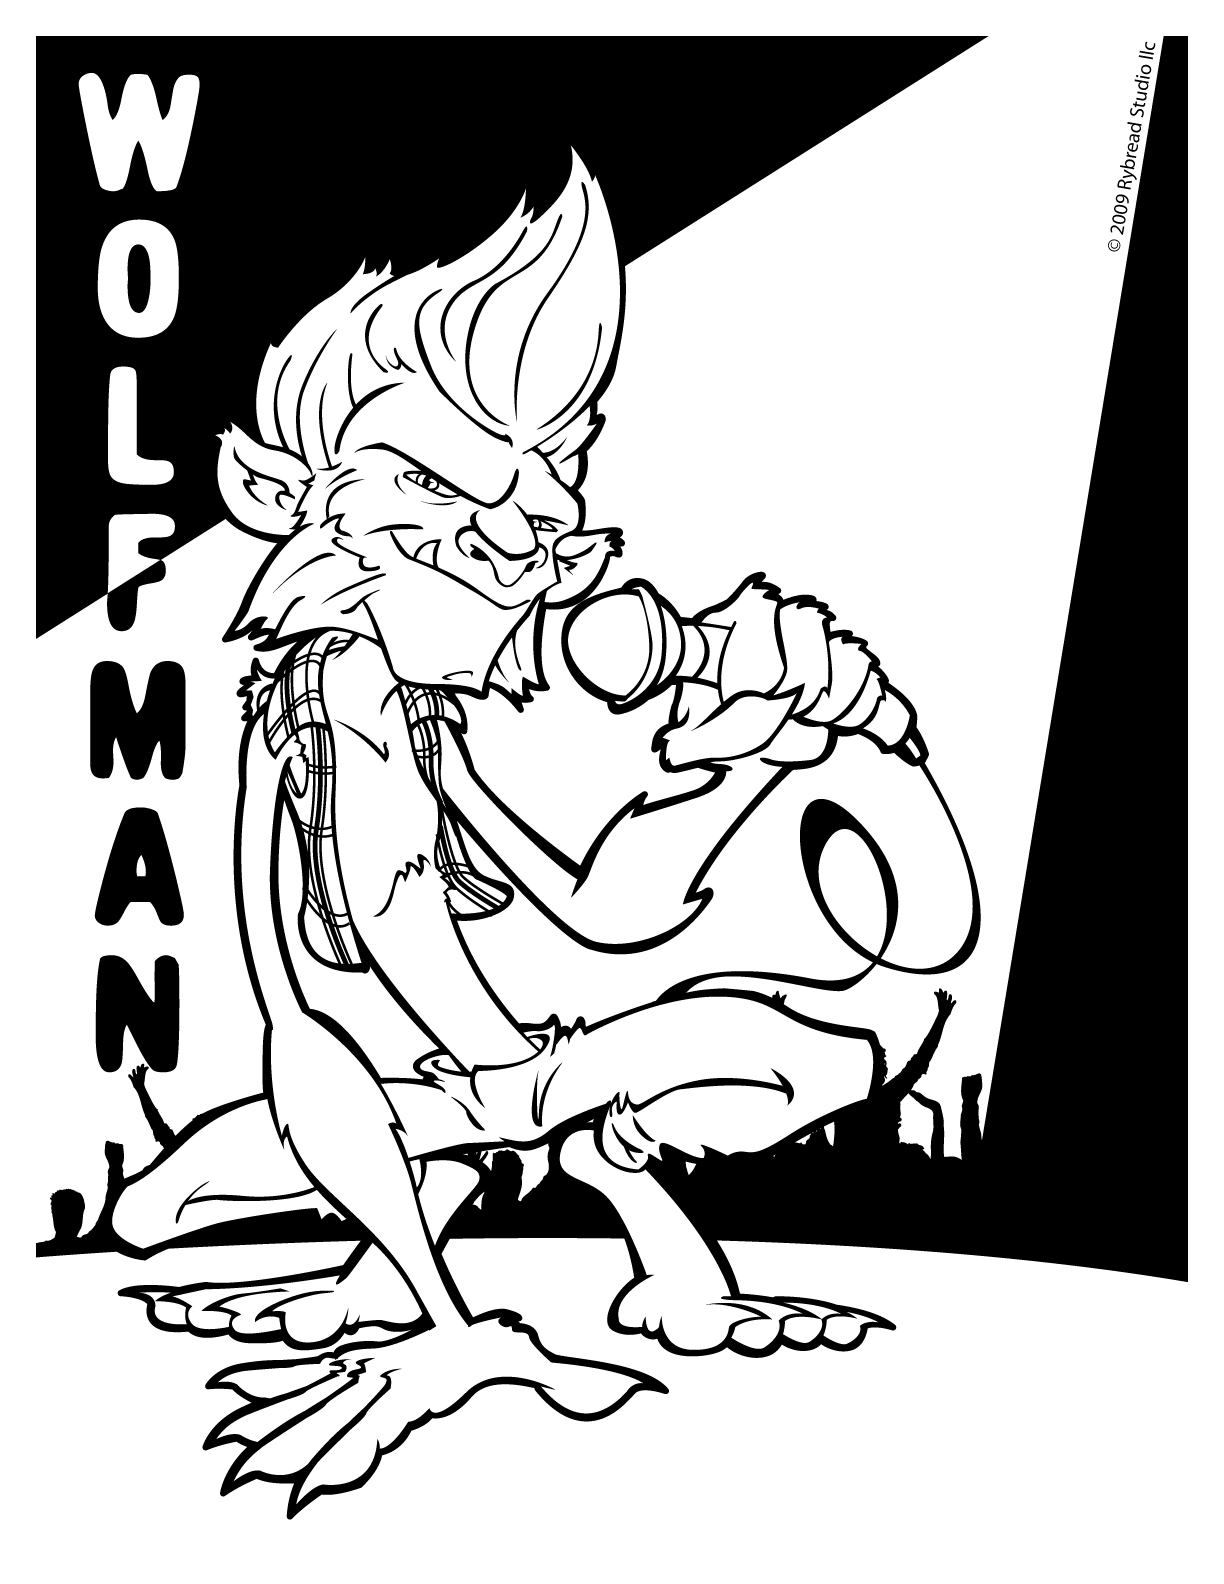 Wolfman Coloring Pages